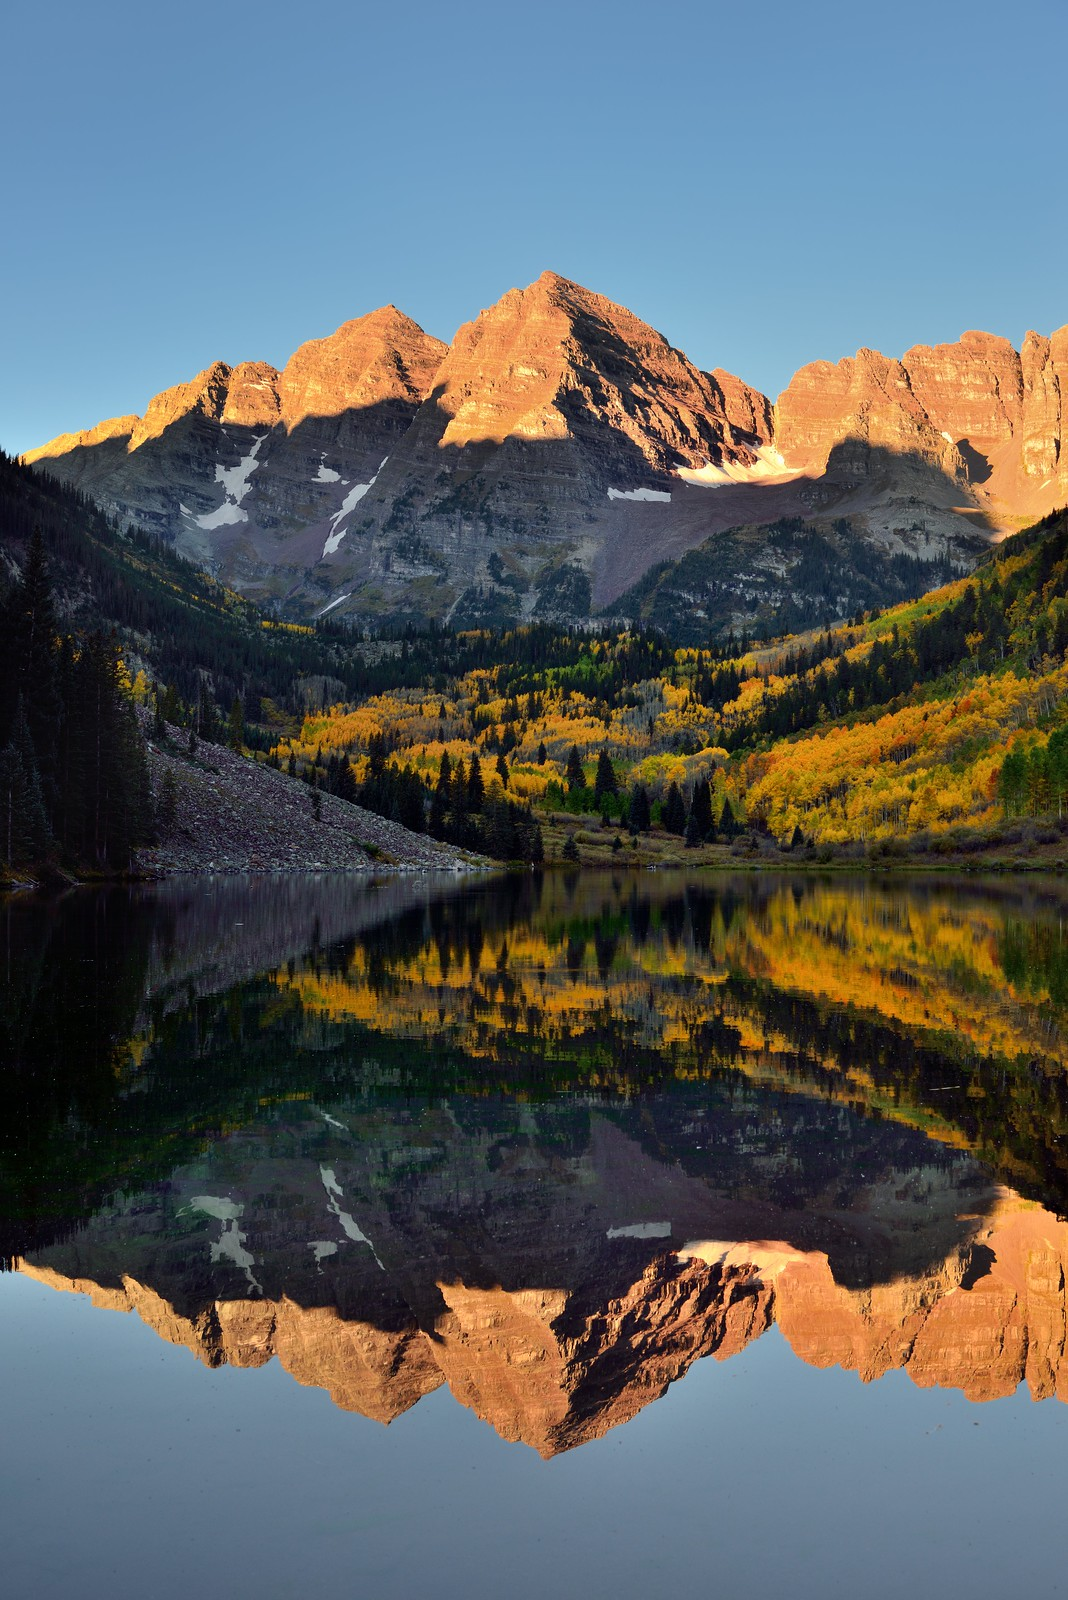 Glasslike Reflections of Maroon Bells on a Lake